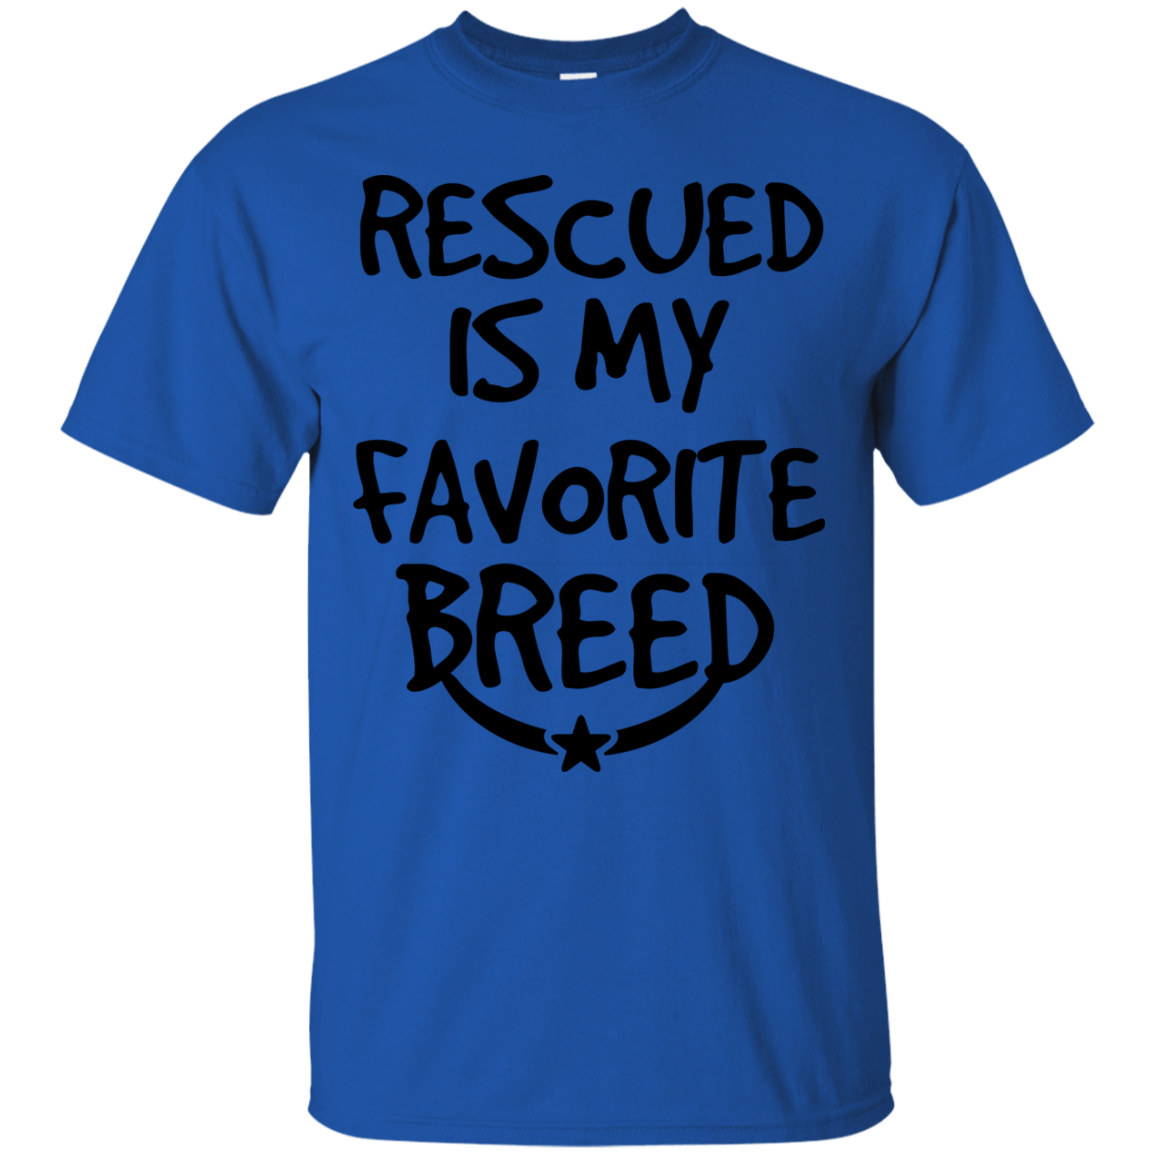 Rescue Breed themed T-Shirts and Hoodies for Men and Women